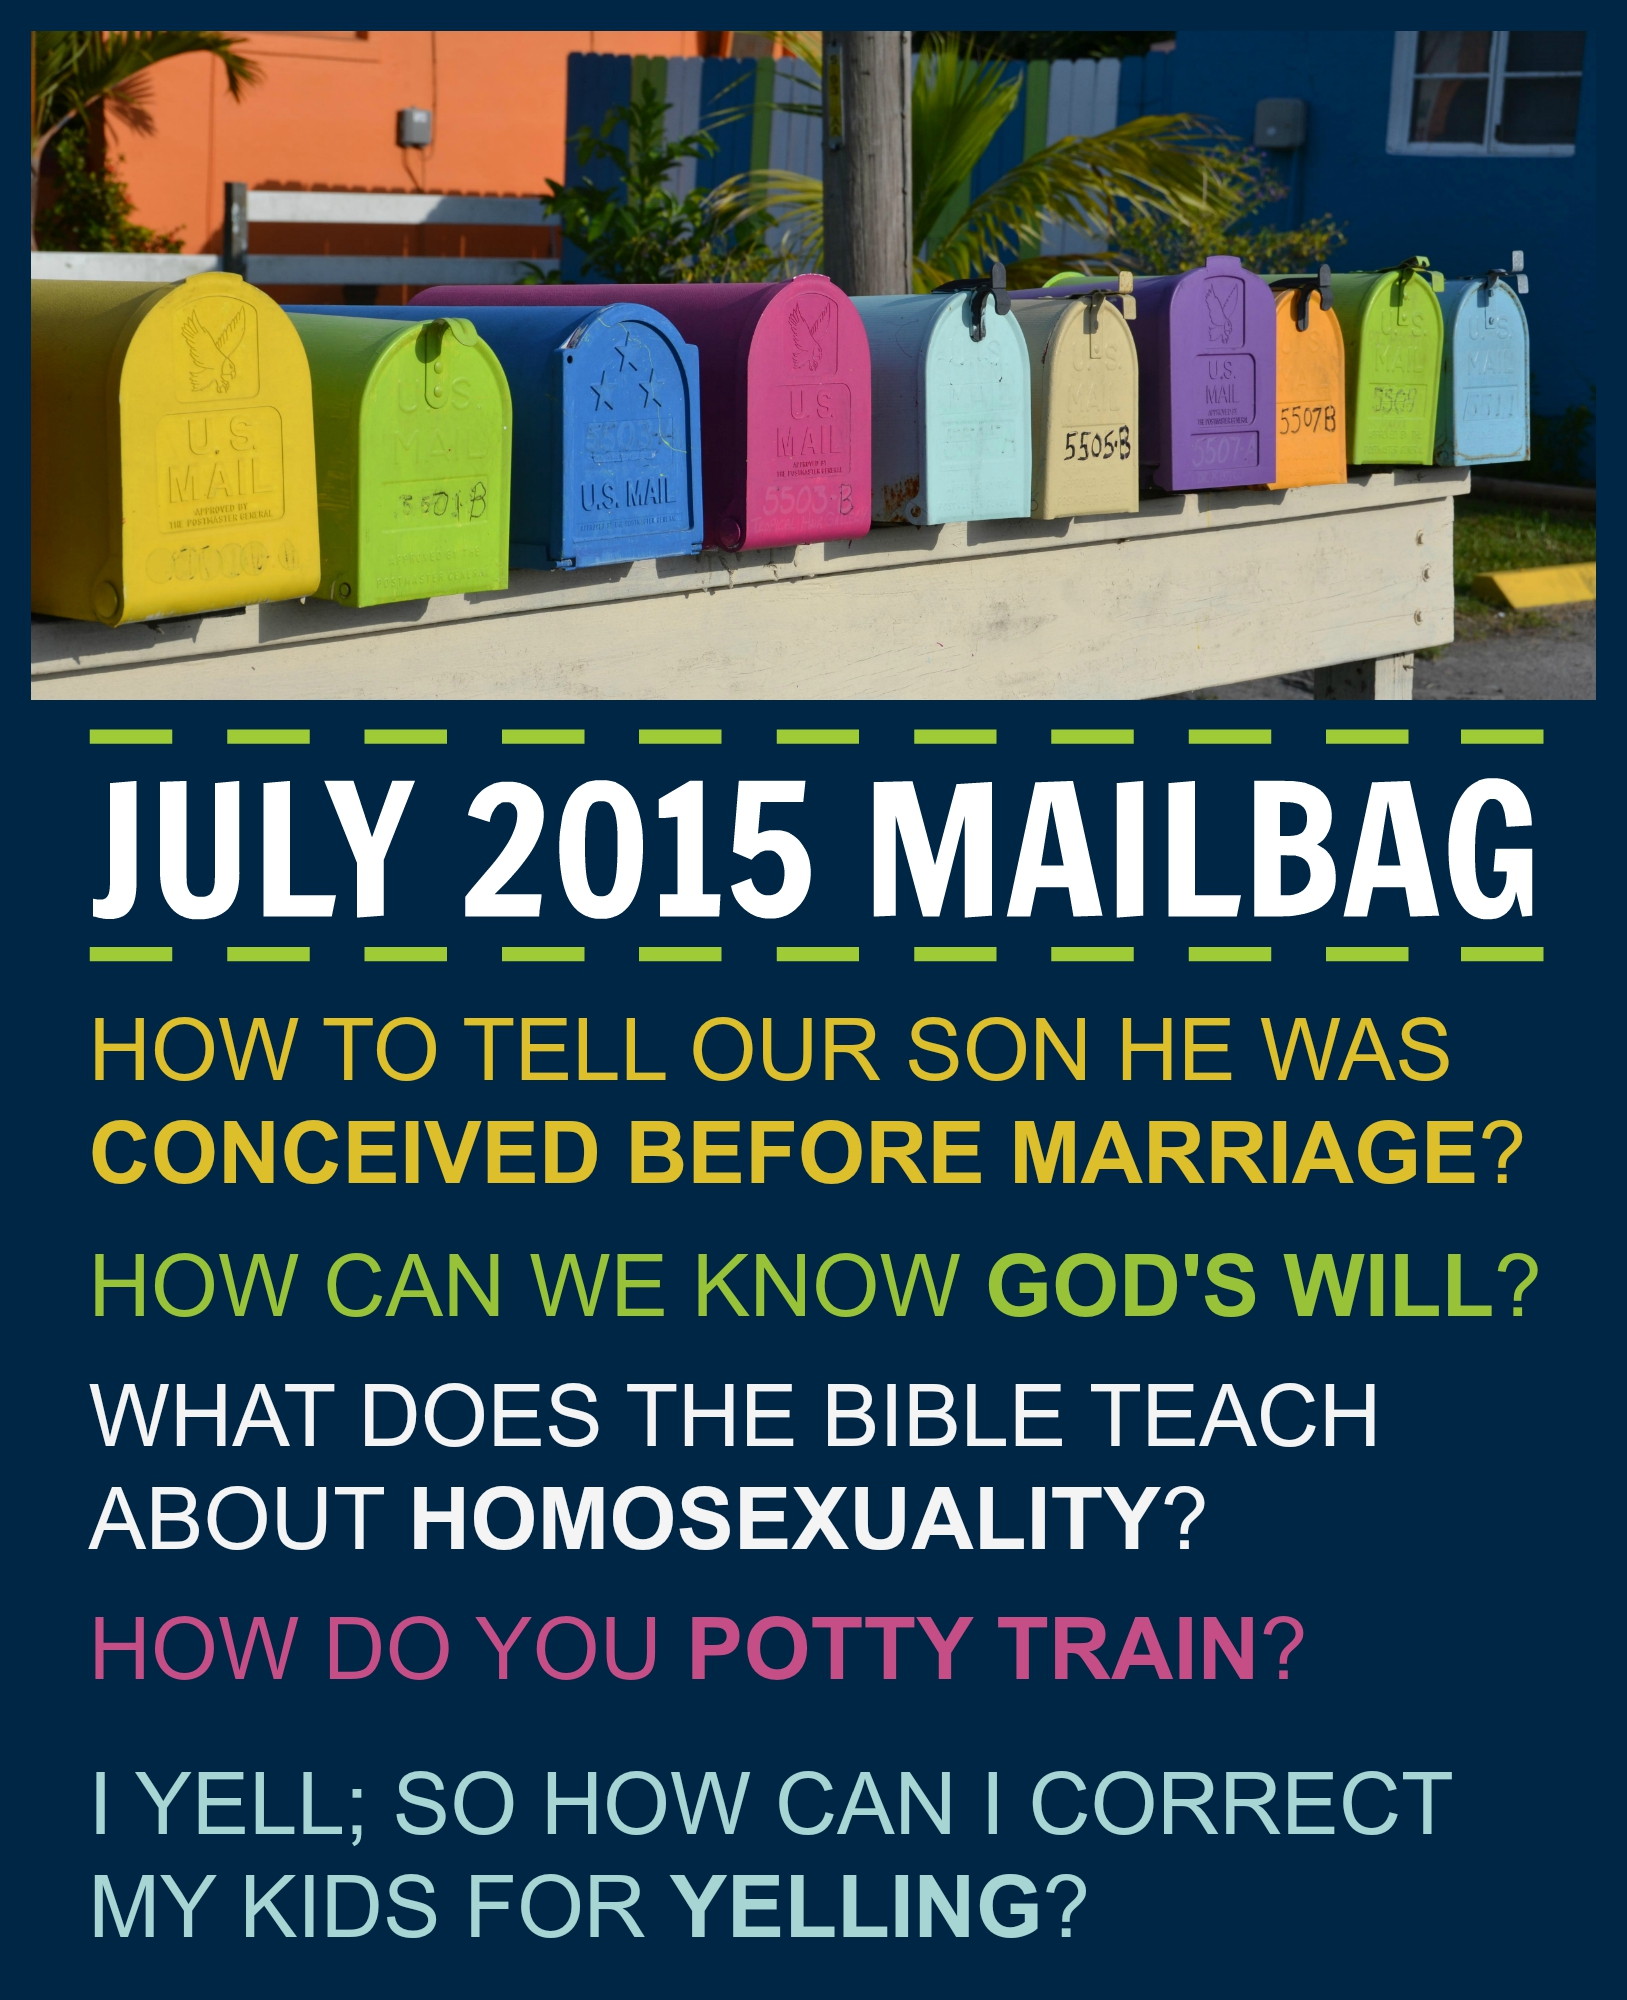 July 2015 Mailbag // yelling & hypocrisy, how to tell son he was conceived before marriage?, what does the Bible say about homosexuality? Potty training? knowing God's will // jessconnell.com